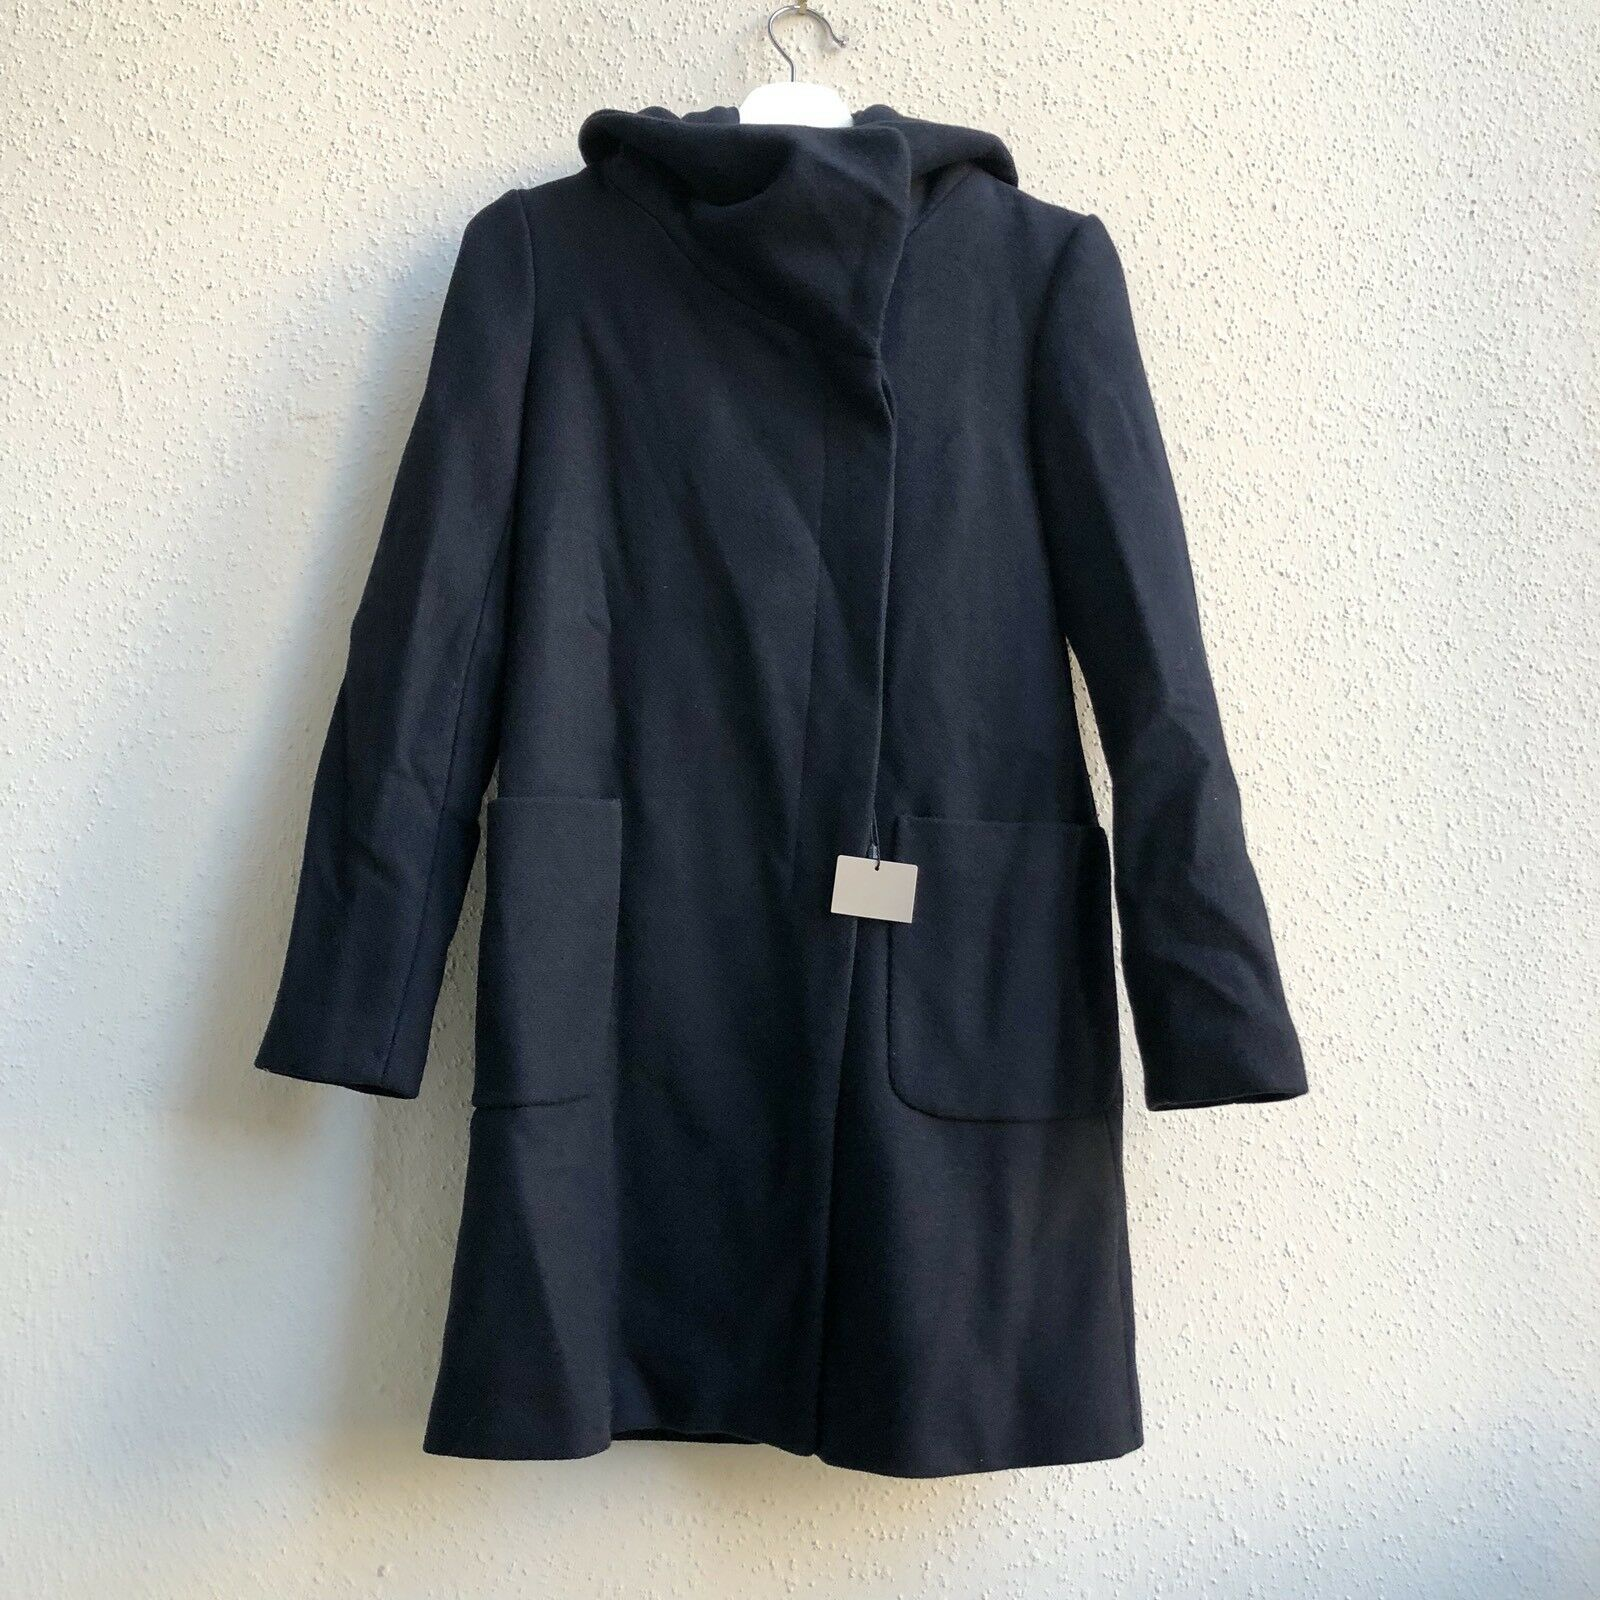 149 NWT ZARA OUTERWEAR NAVY X-Small wool blend Long coat with Wrap Collar S17